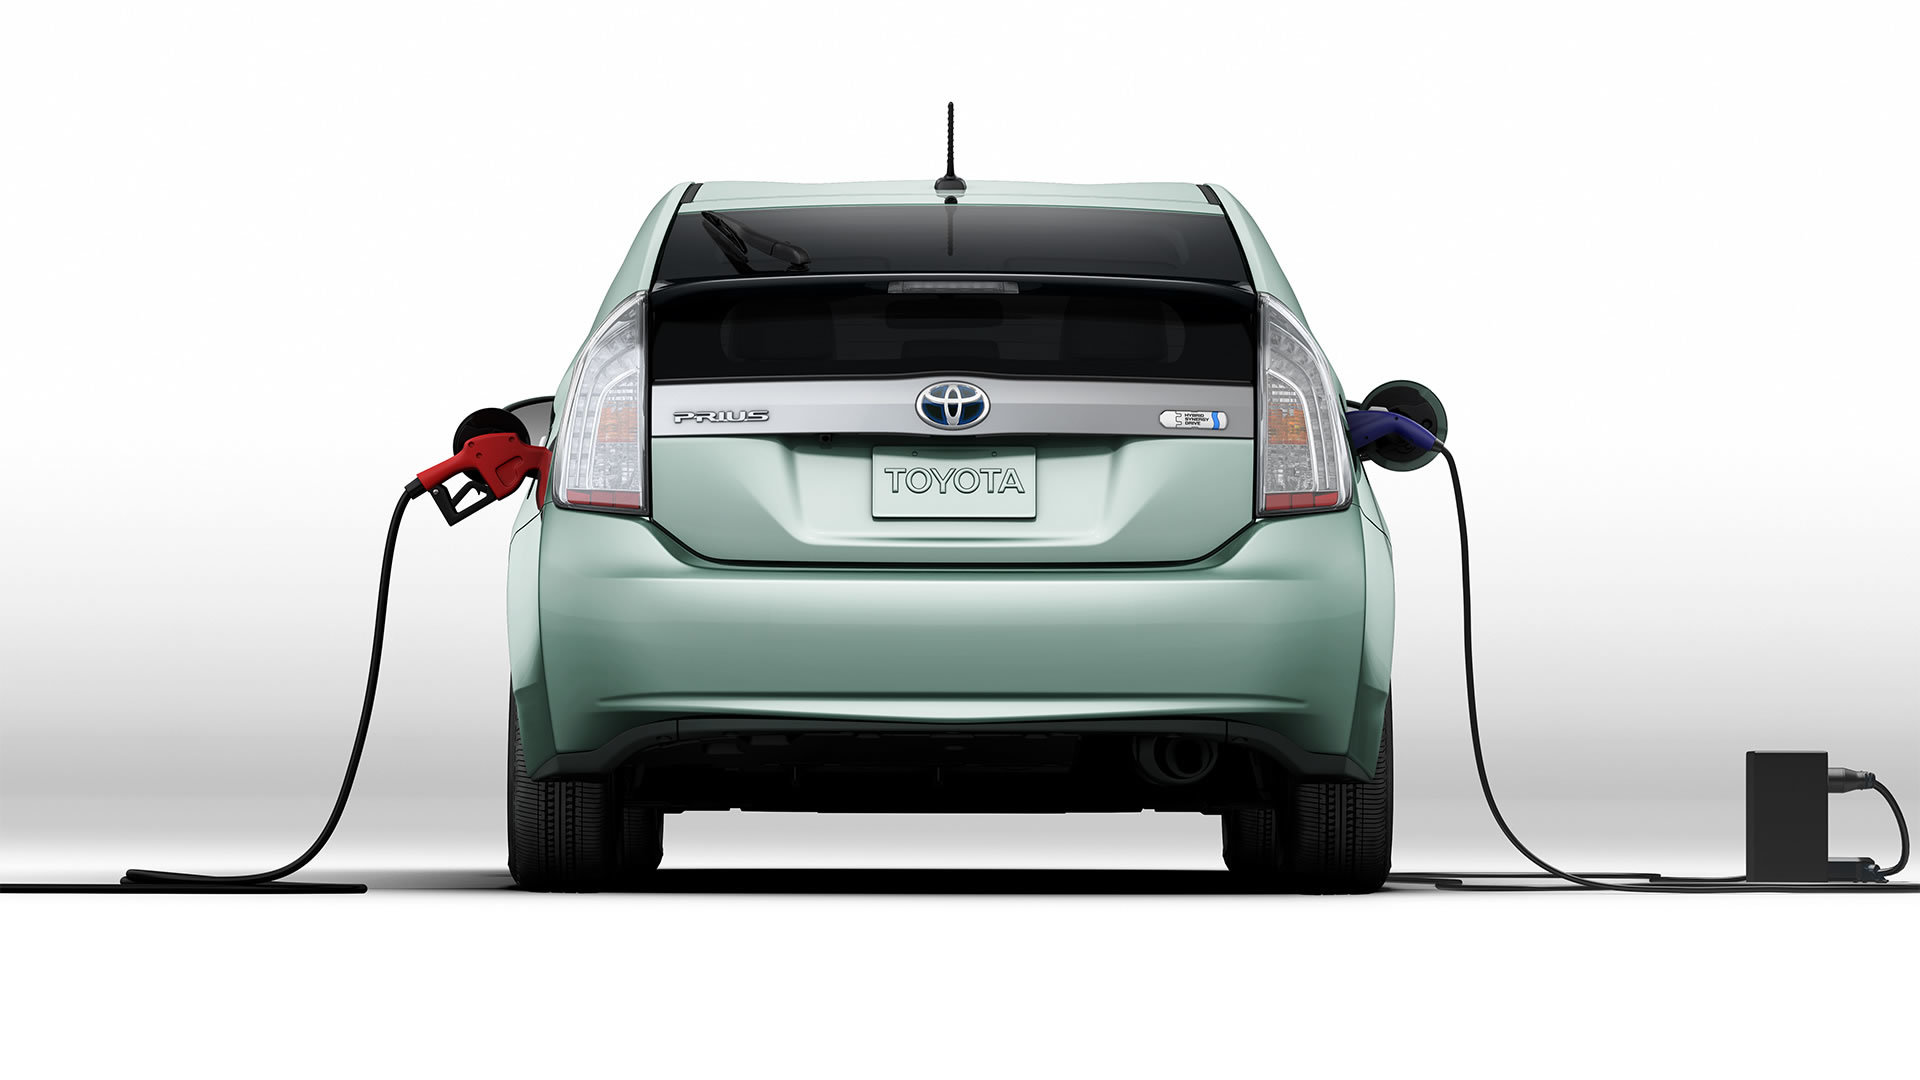 2016 toyota prius plug in hybrid car for sale in fergus falls mn quality toyota. Black Bedroom Furniture Sets. Home Design Ideas